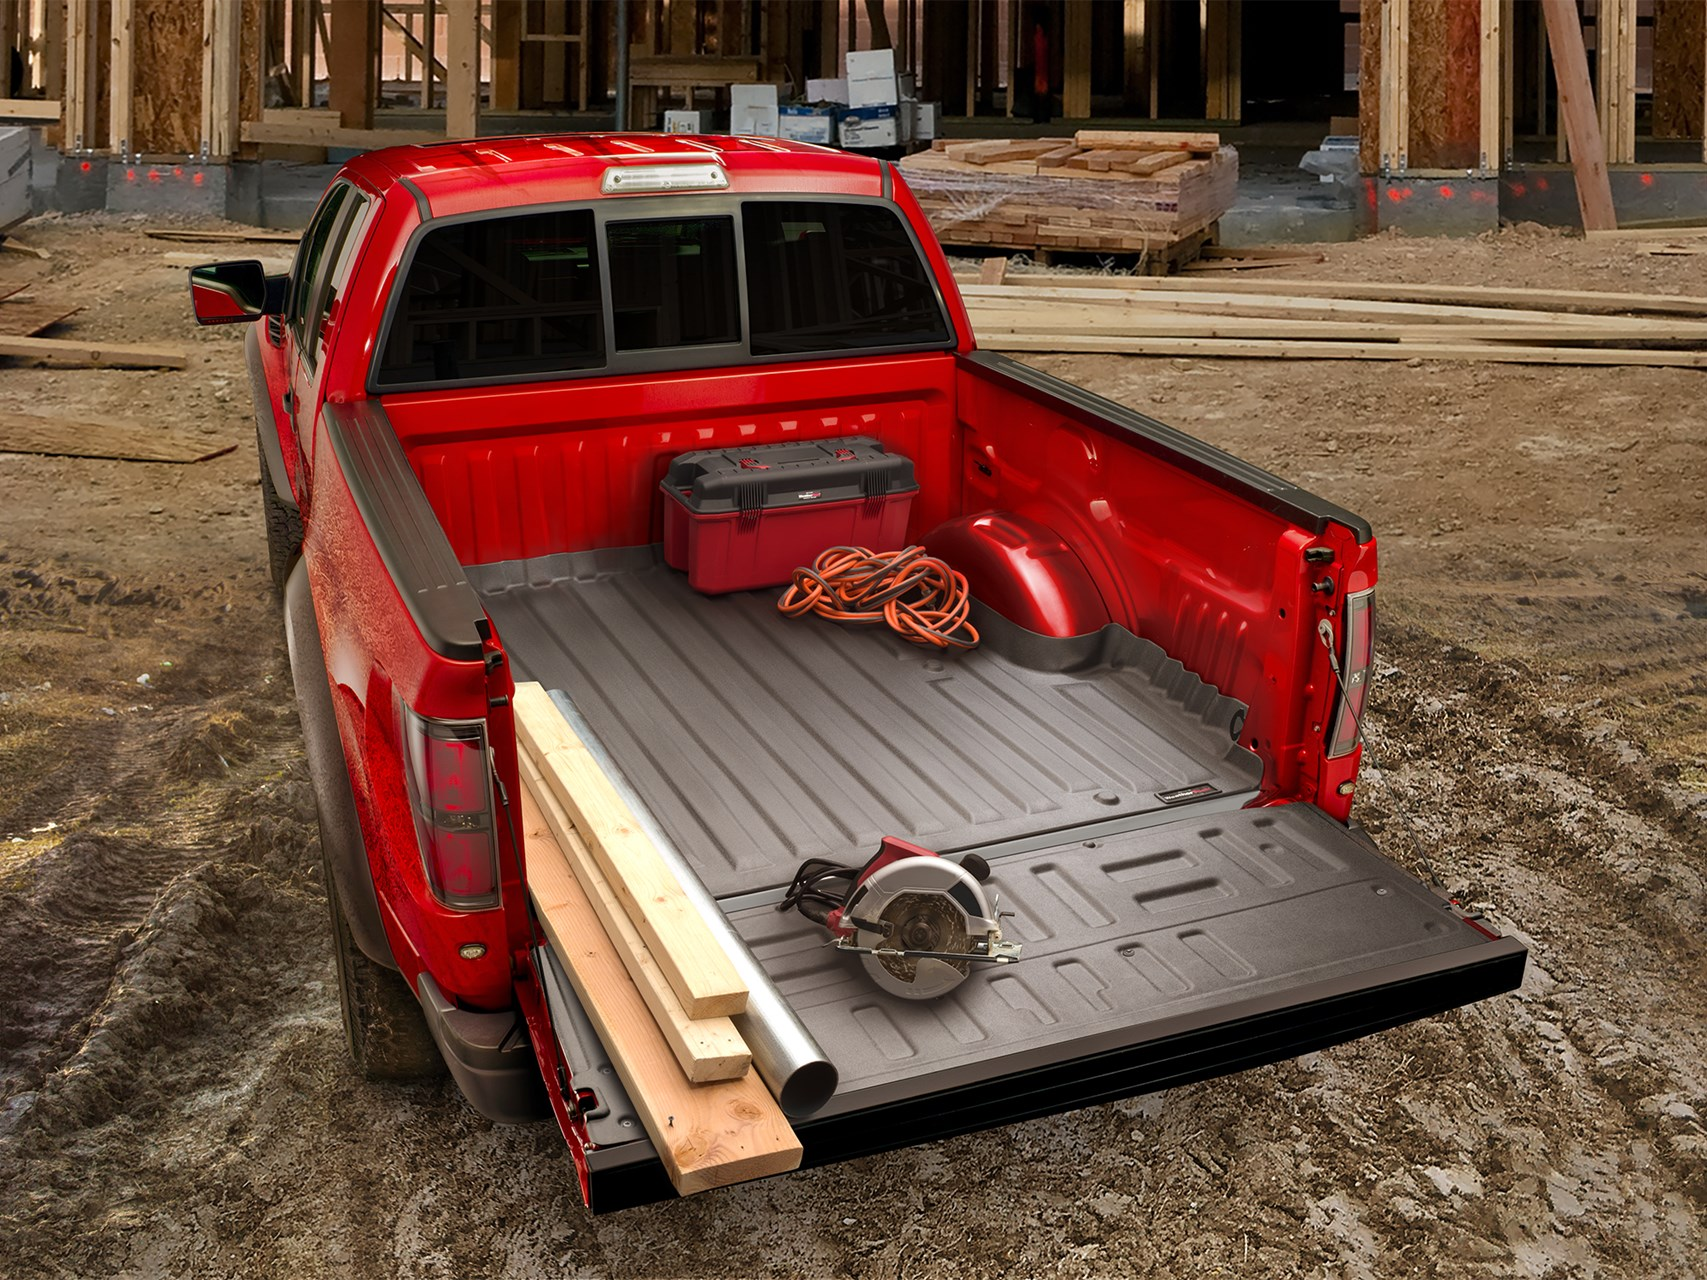 Techliner Bed Liner And Tailgate Protector For Trucks Weathertech Canada